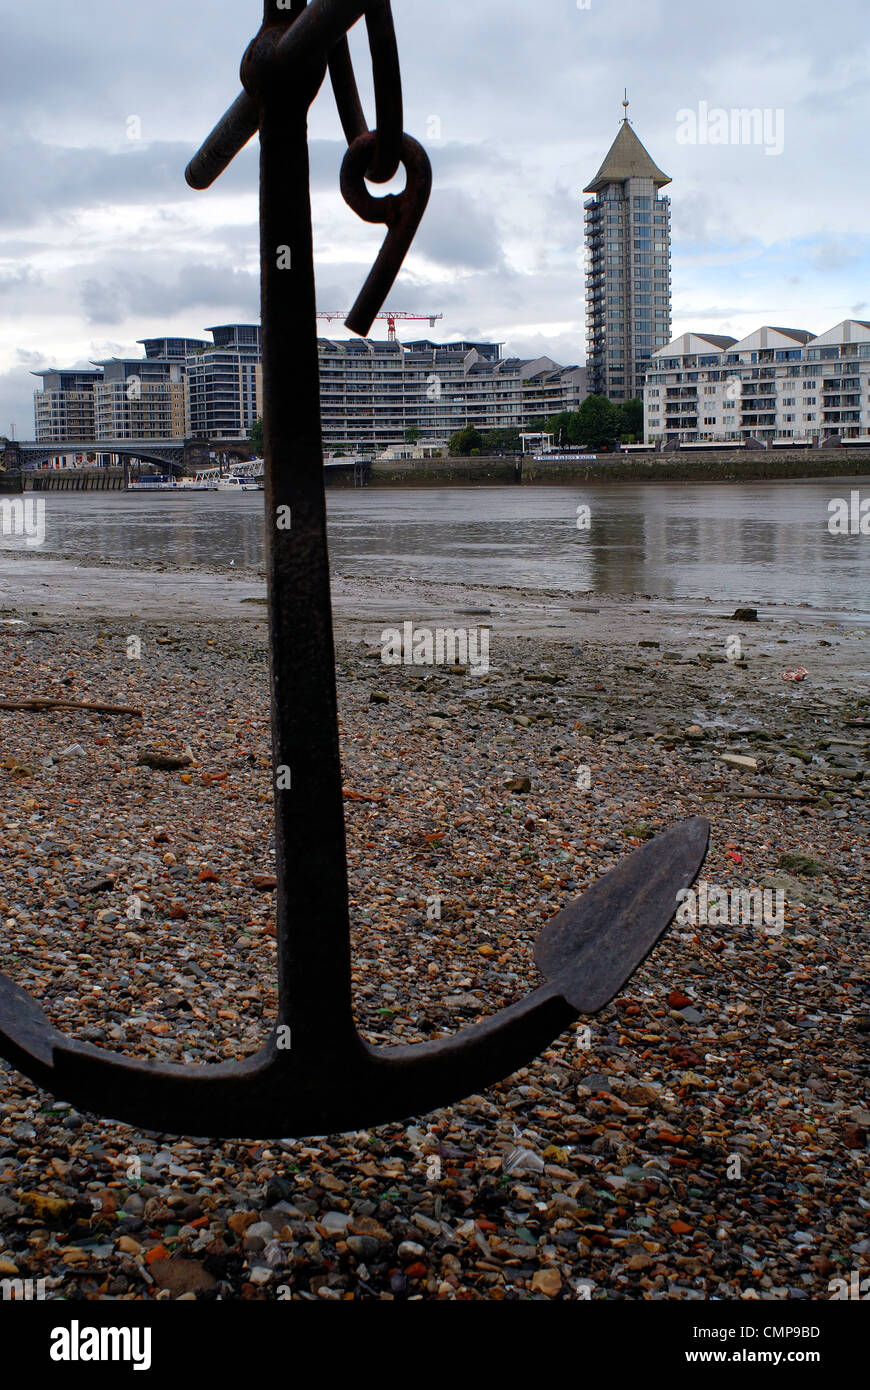 0ld anchor in the Thames - Stock Image